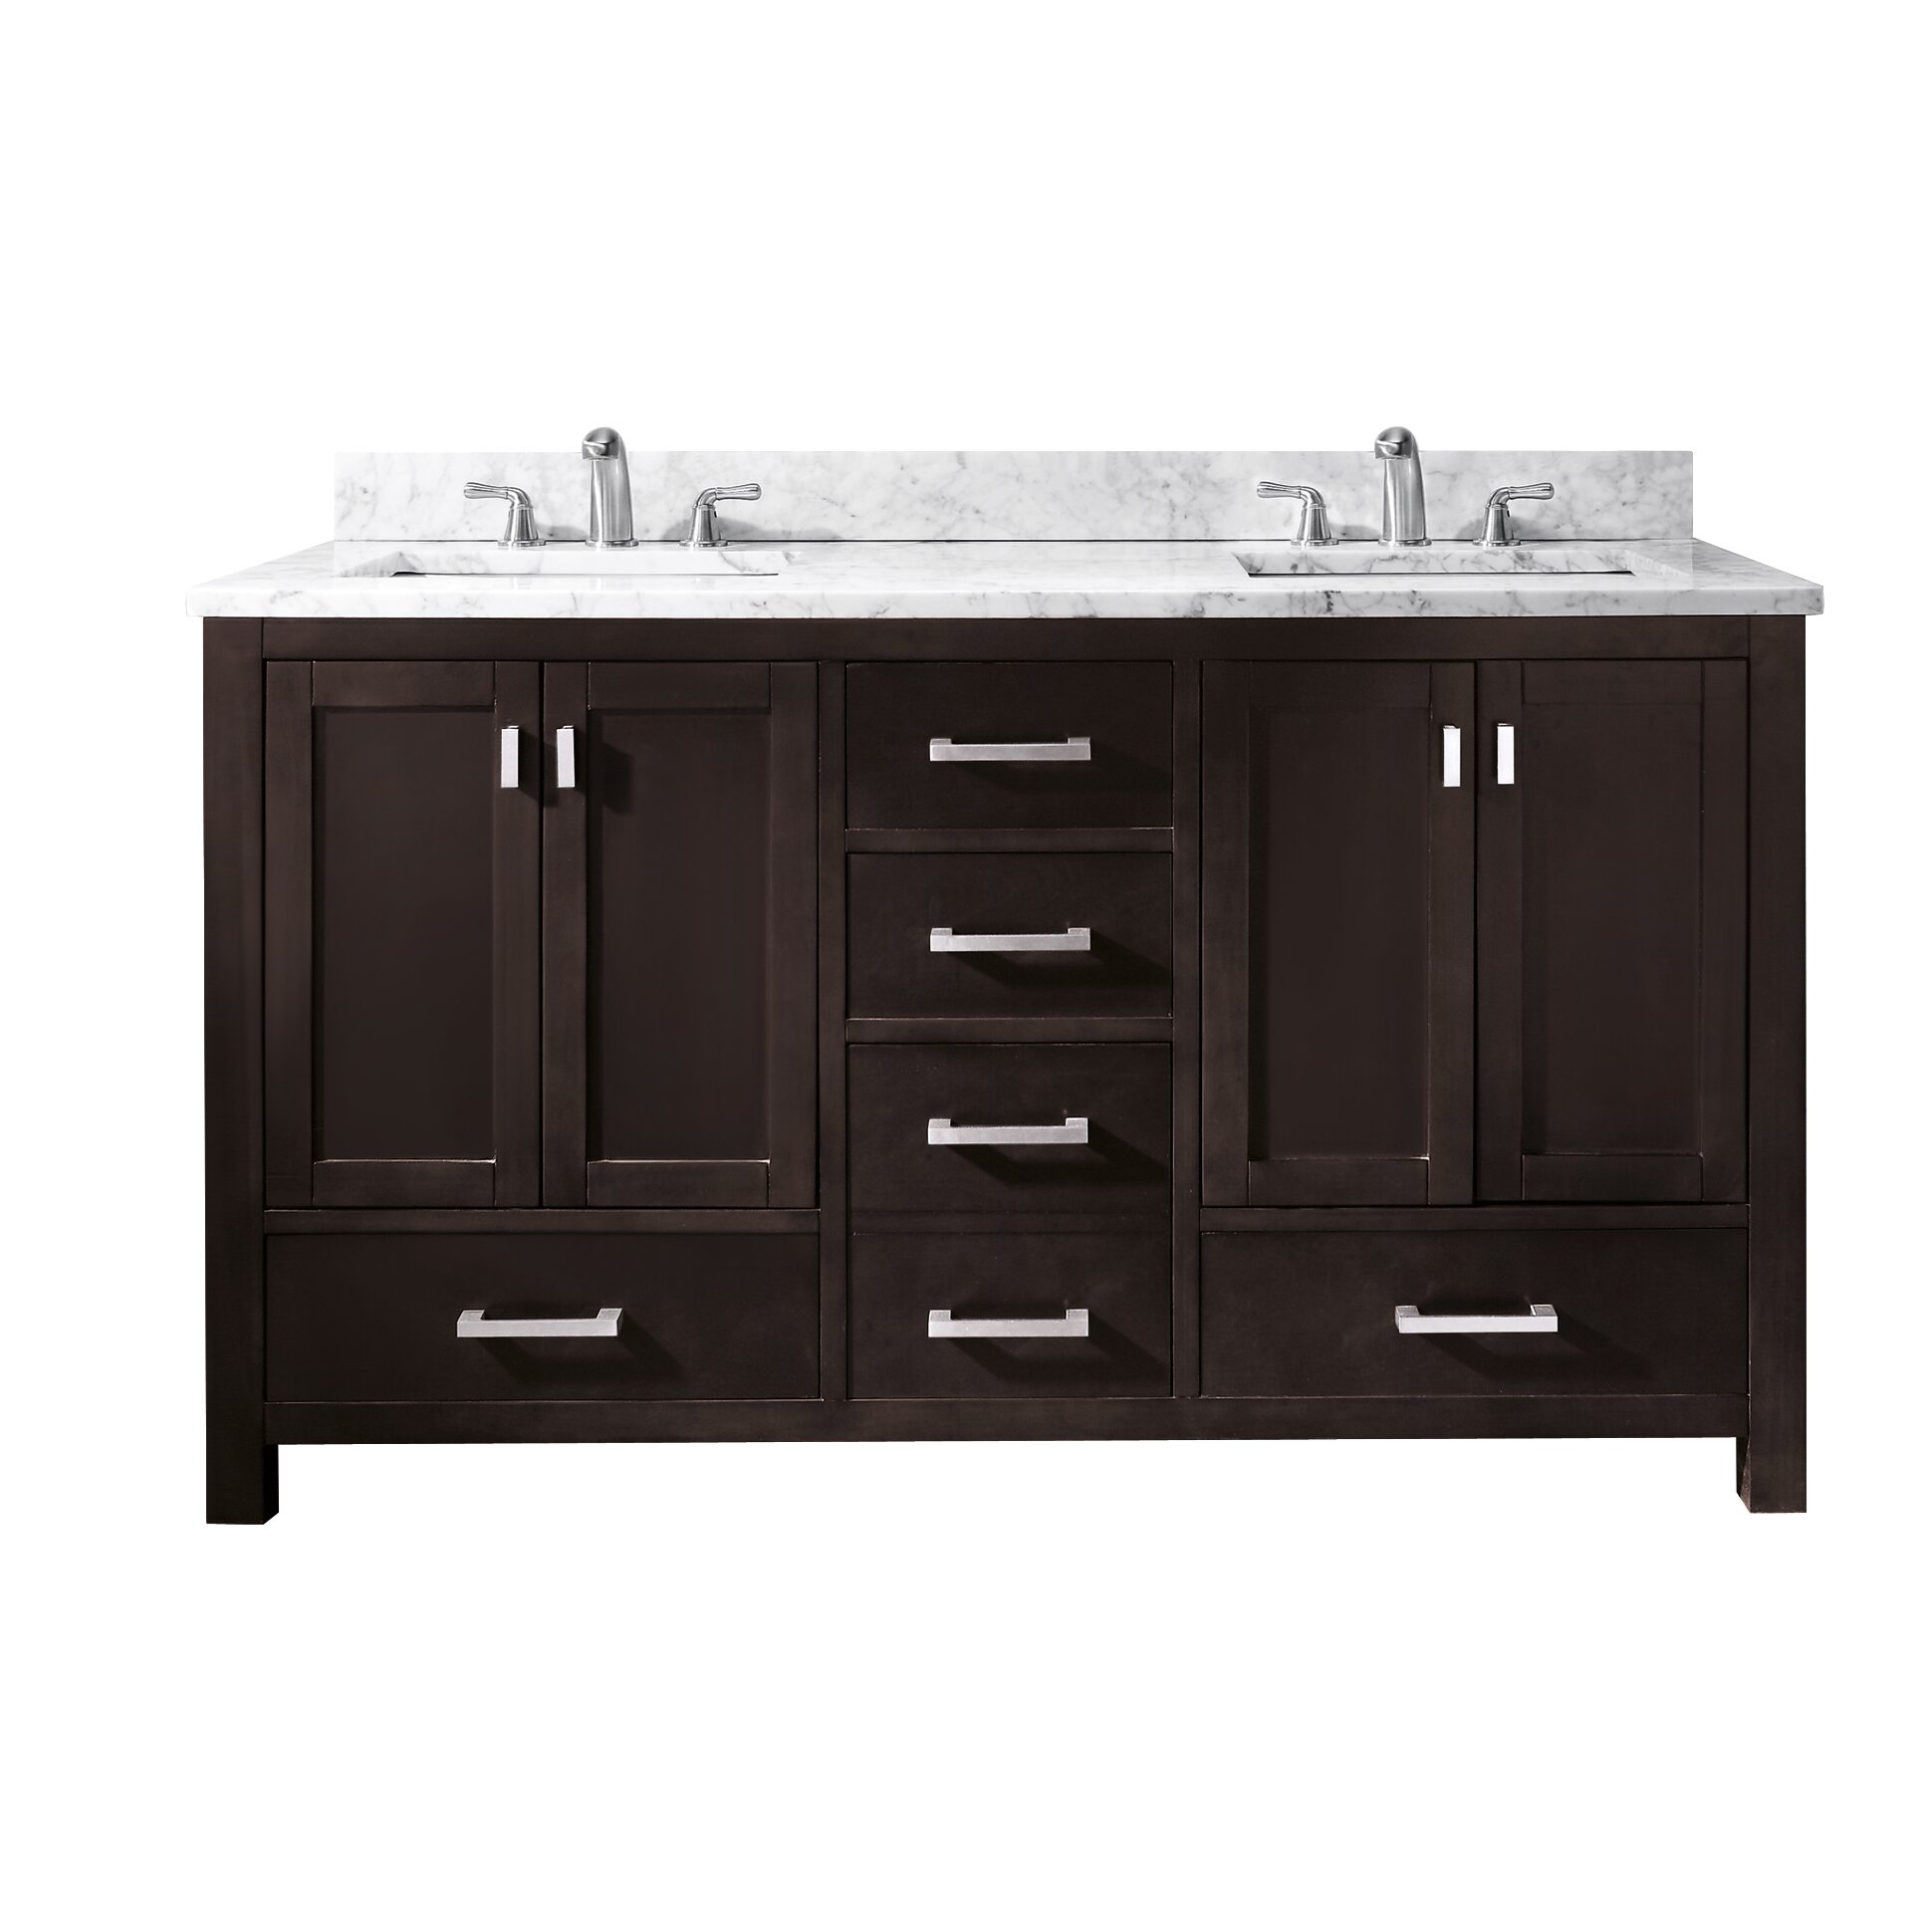 Avanity modero 60 double vanity base reviews wayfair - Menards bathroom vanities 48 inches ...